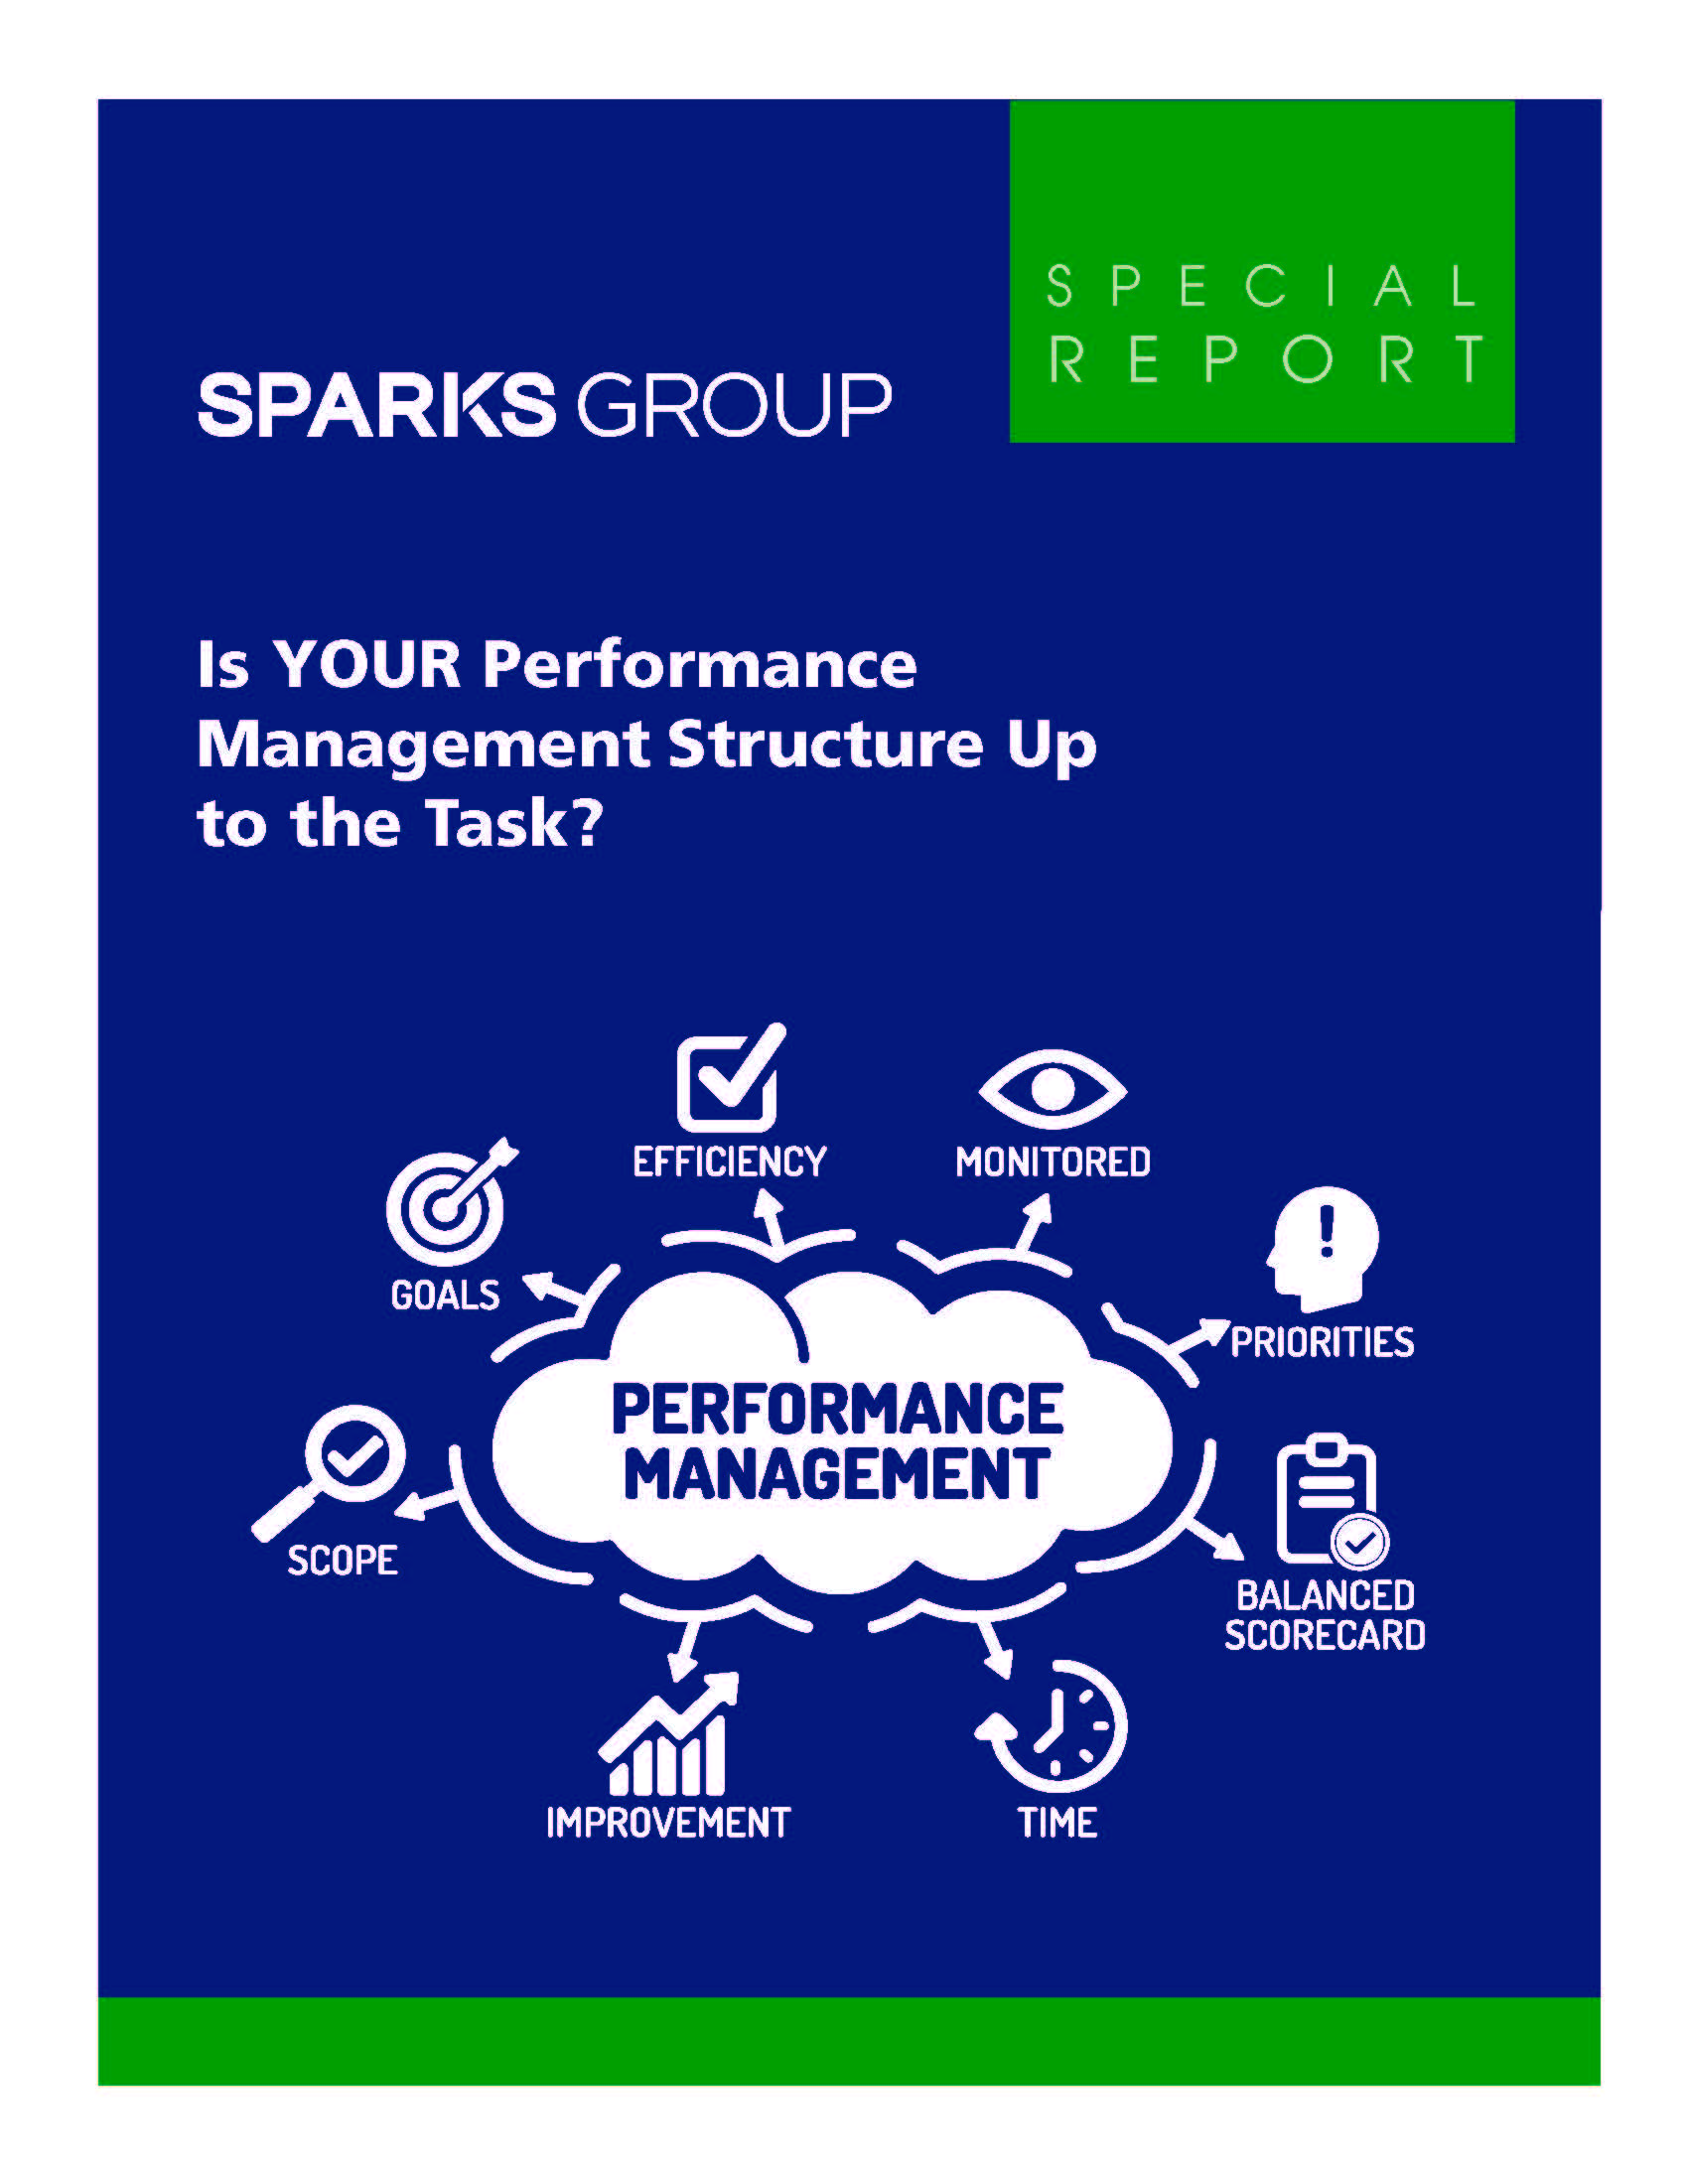 Is Your Performance Management Structure Up to the Task?